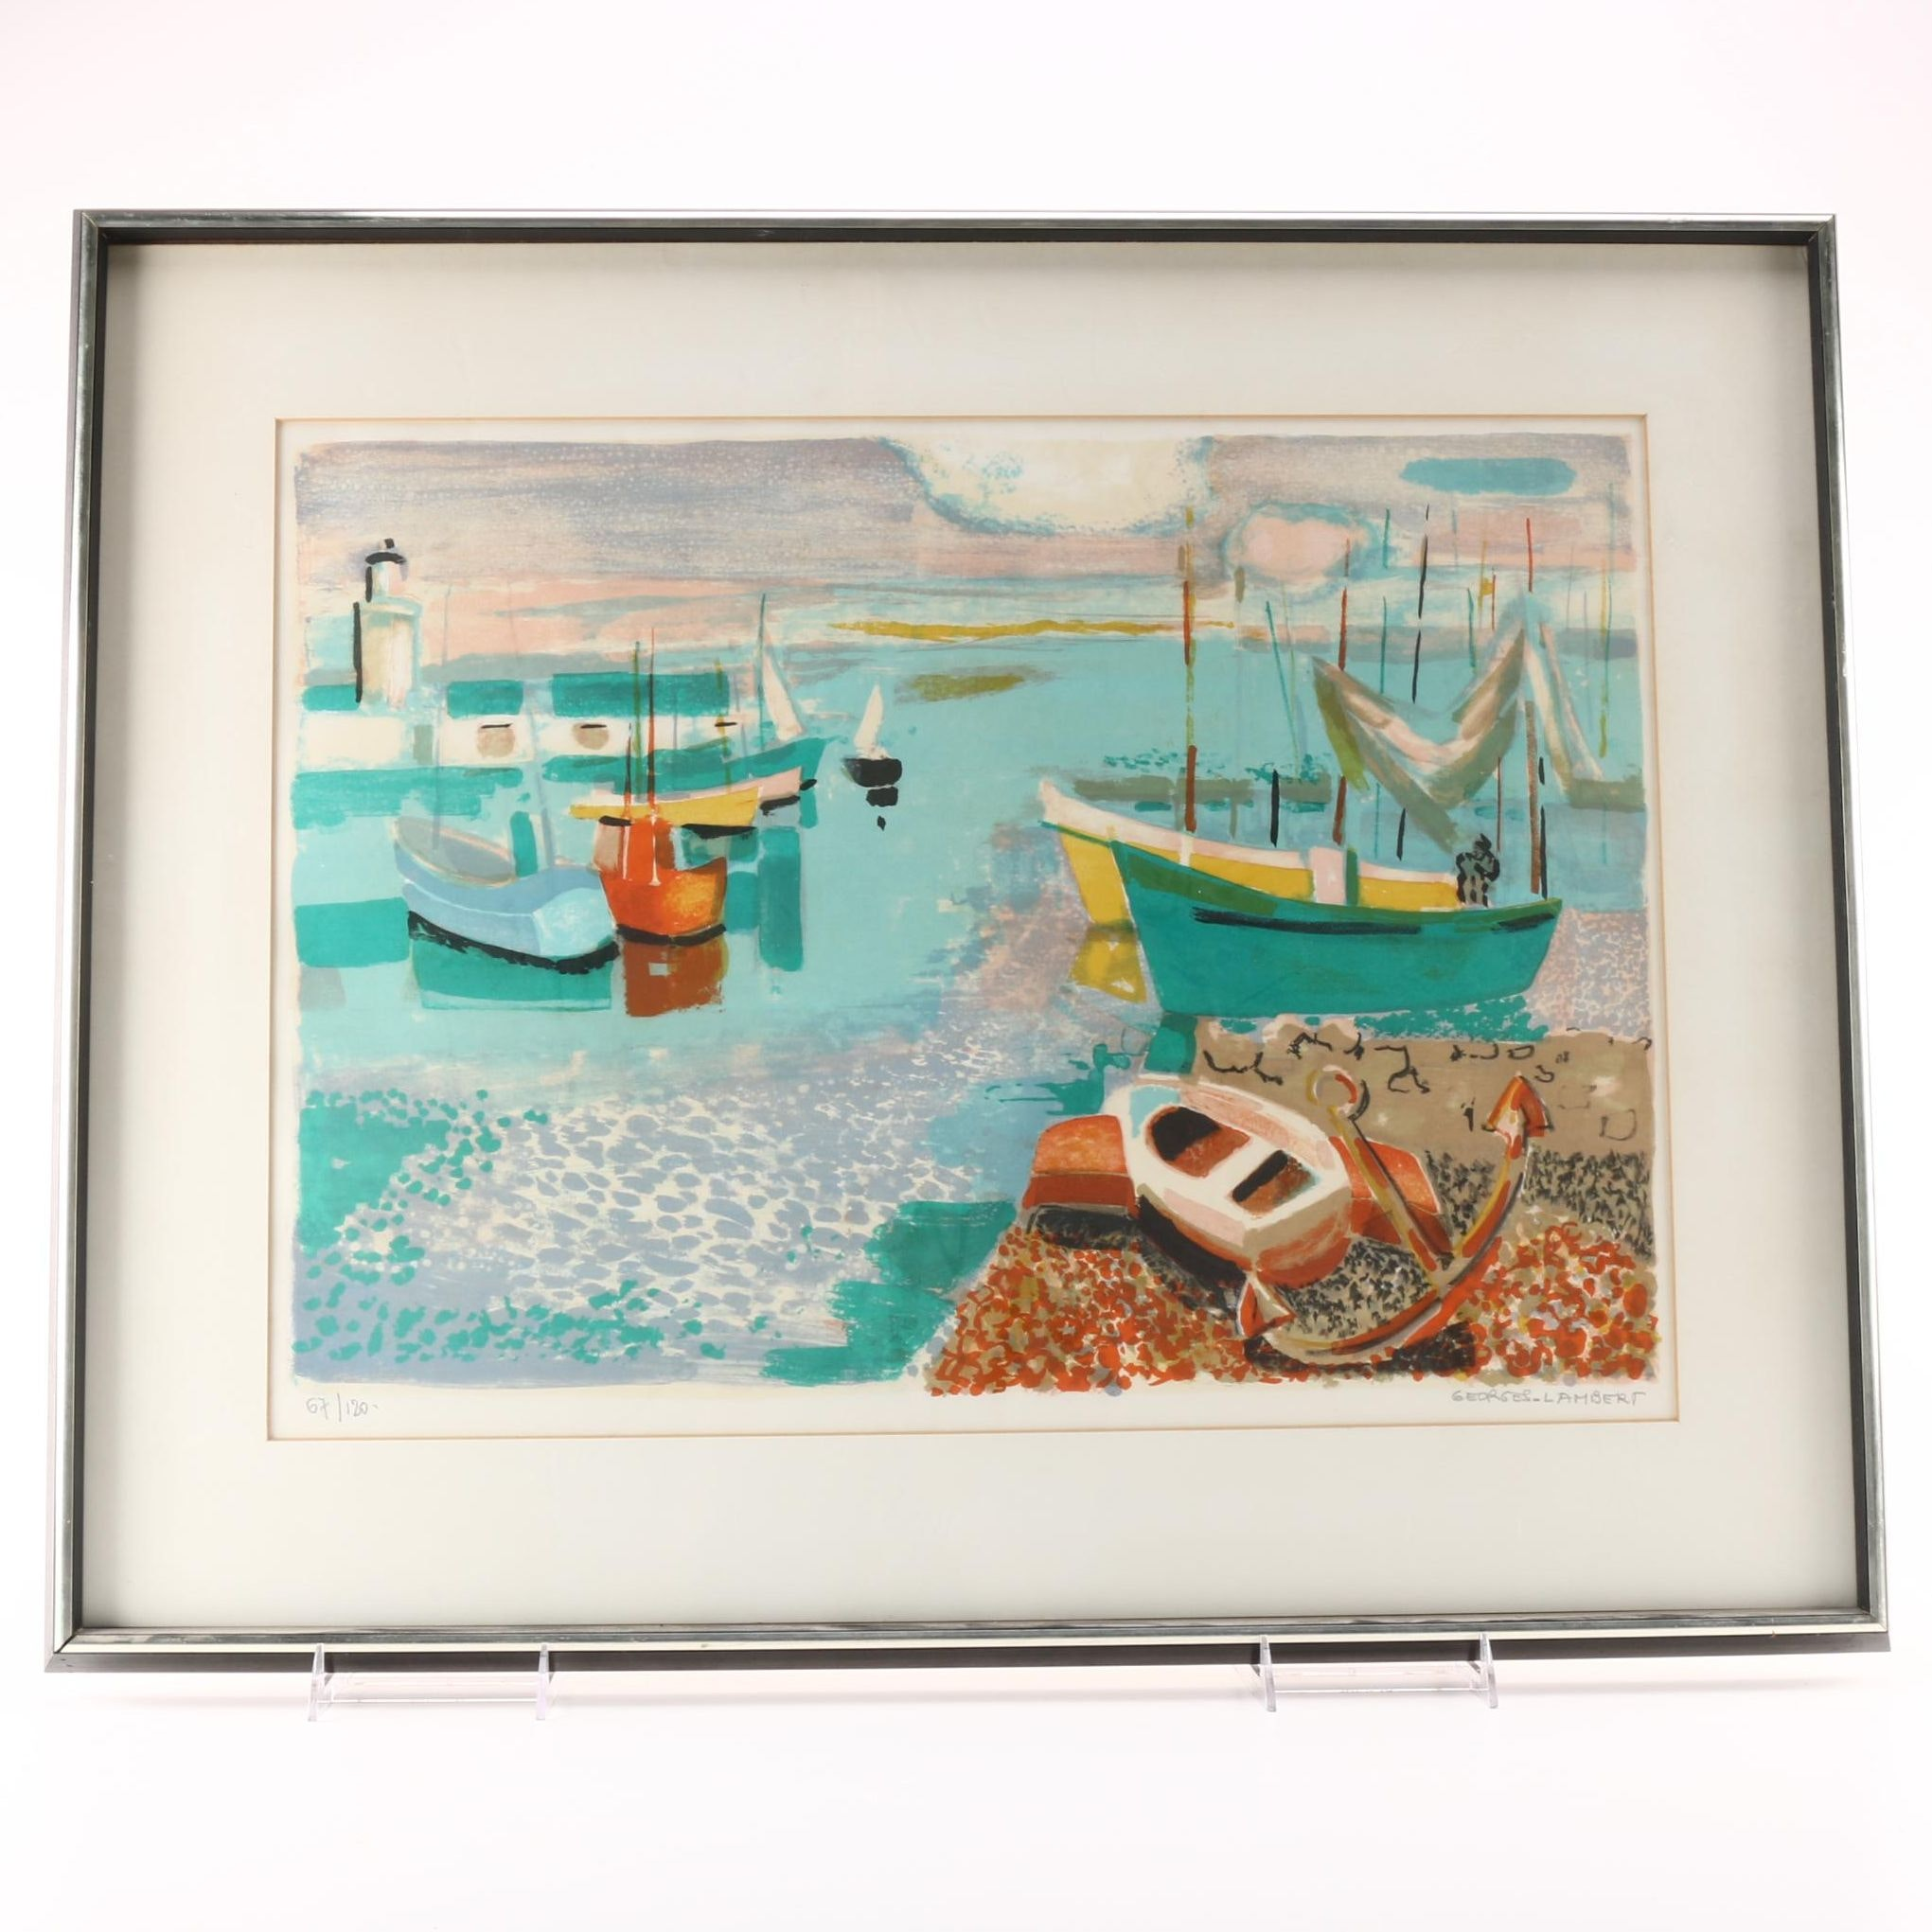 Georges Lambert Limited Edition Lithograph of a Harbor